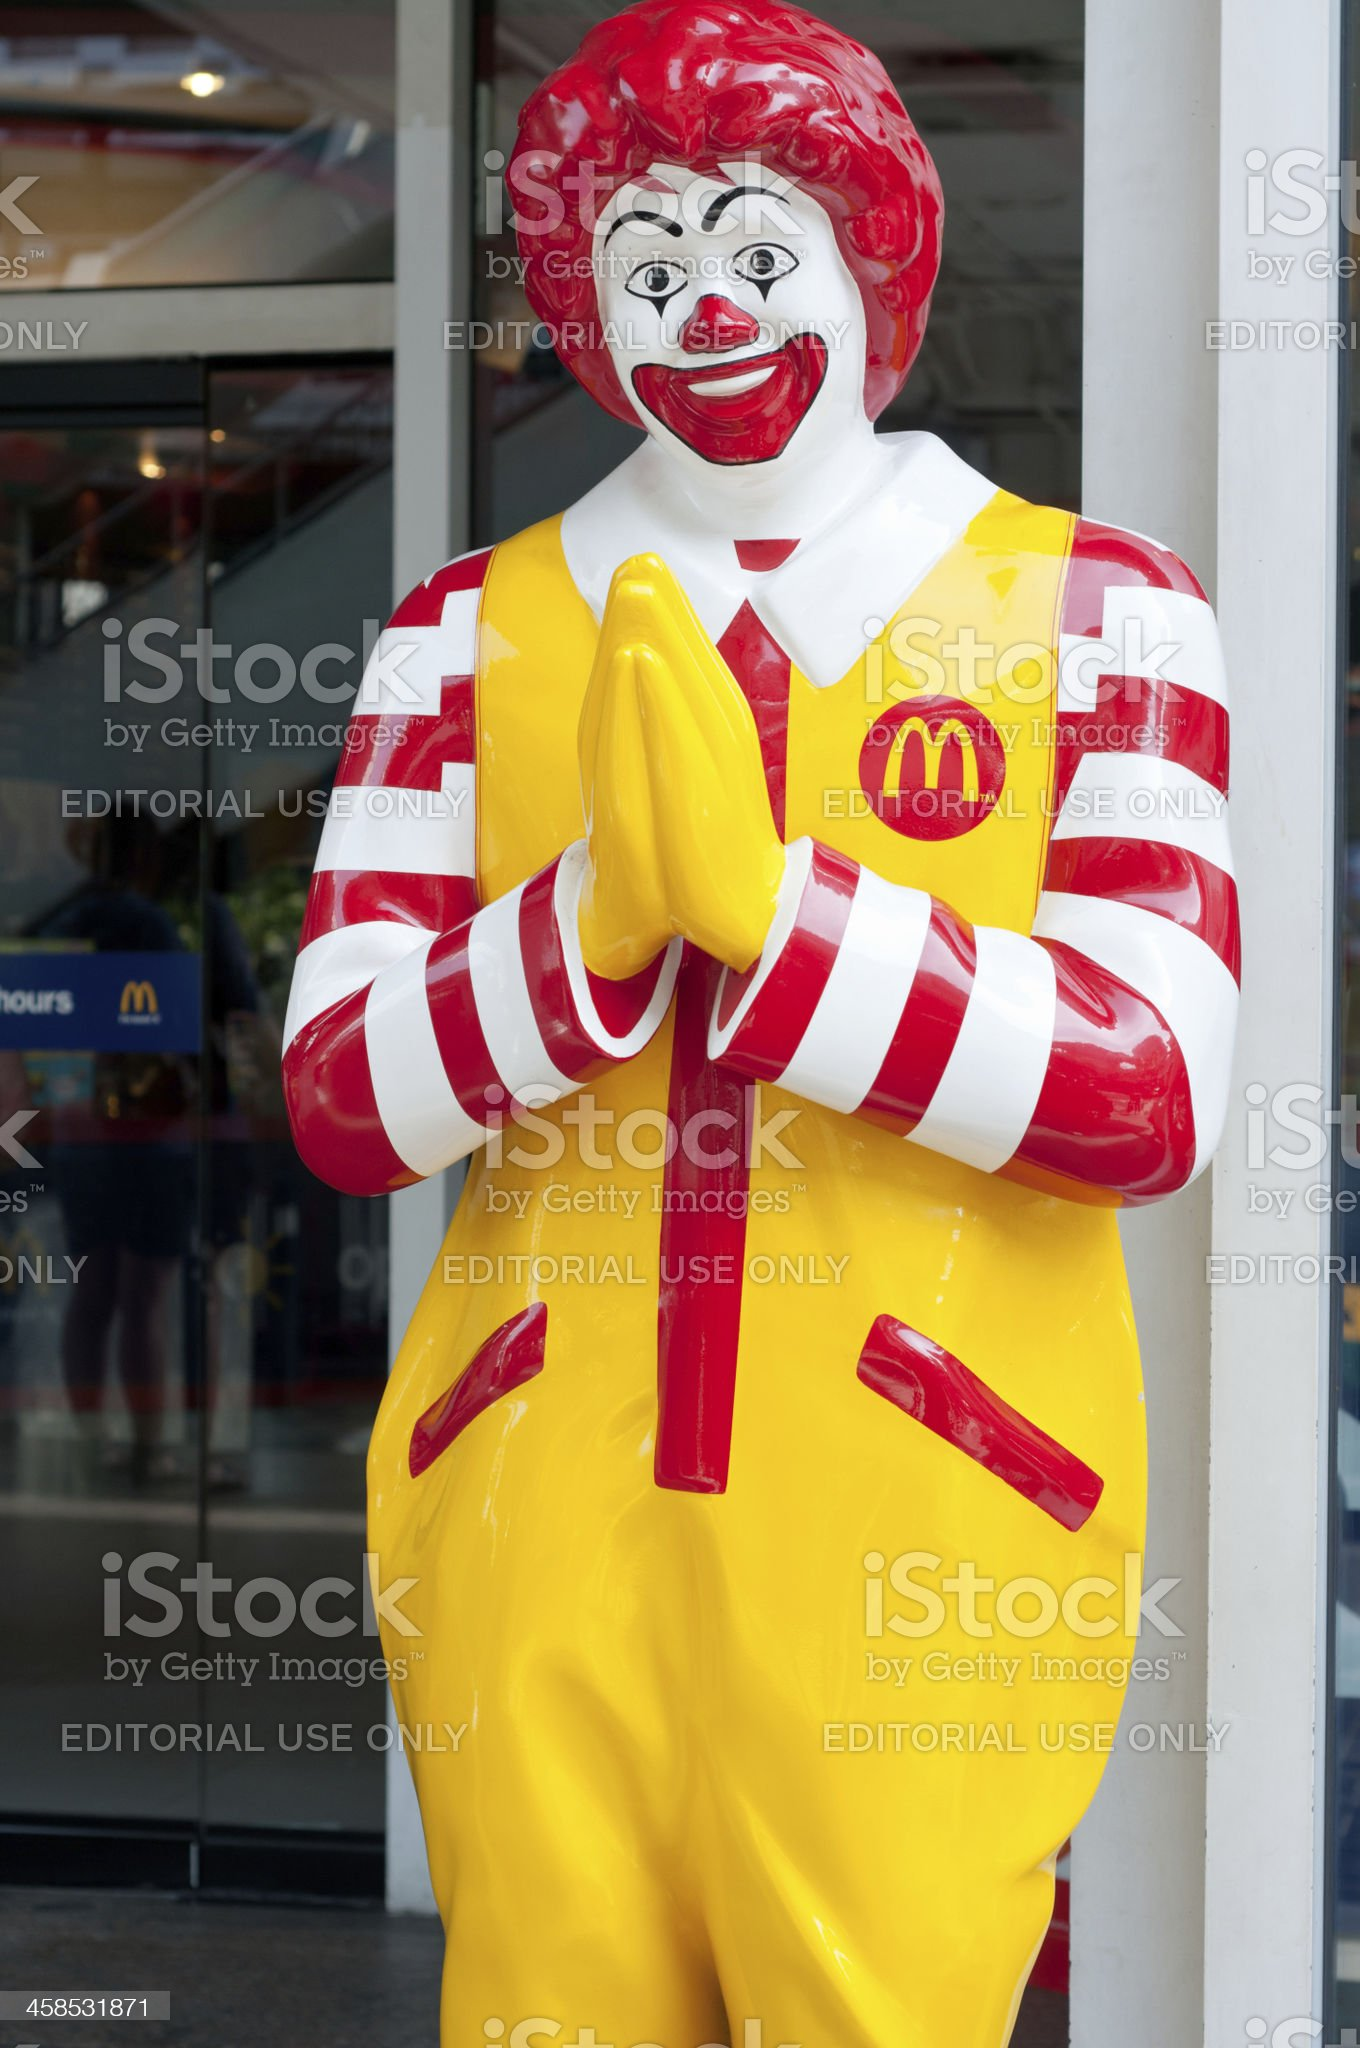 Ronald Mcdonald Performing The Wai Greeting In Thailand royalty-free stock photo